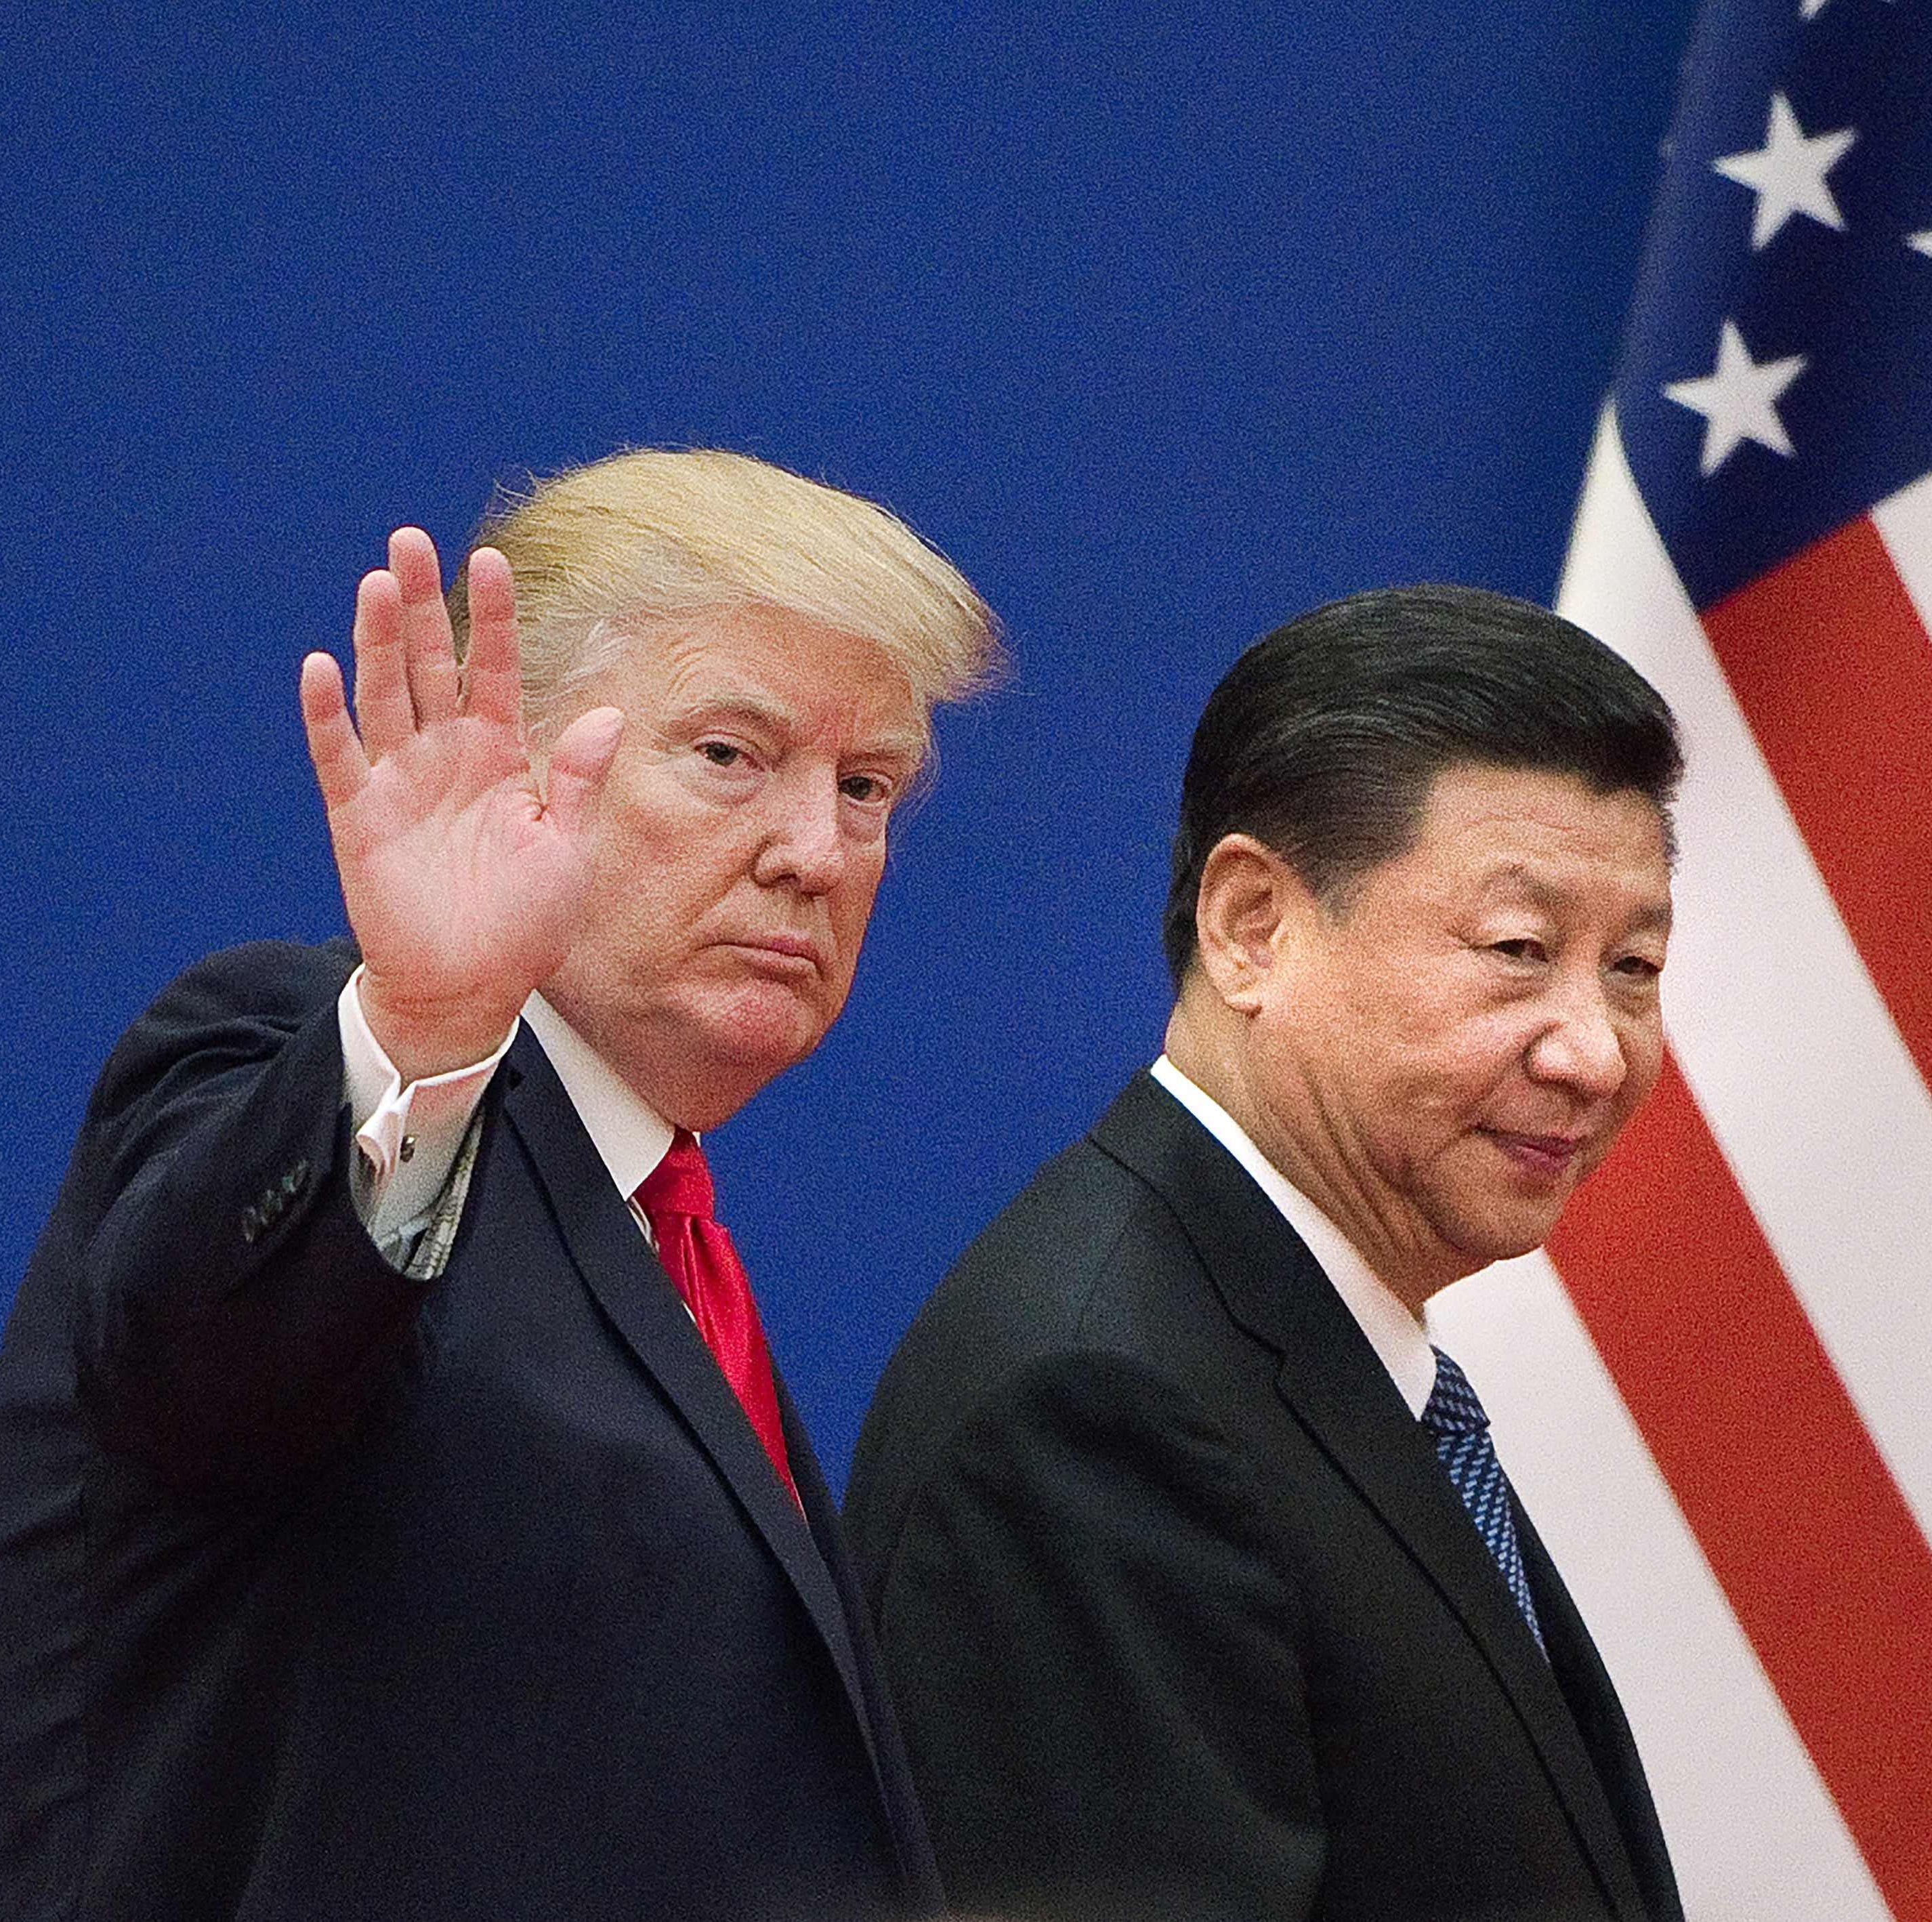 """(FILES) This file picture taken on November 9, 2017 shows US President Donald Trump (L) and China's President Xi Jinping leaving a business leaders event at the Great Hall of the People in Beijing. - US President Donald Trump on March 1, 2019, urged China to abolish tariffs on agricultural products imported from the United States -- adding that trade talks between the rival powers were going well. """"I have asked China to immediately remove all Tariffs on our agricultural products (including beef, pork, etc.),"""" the president wrote on Twitter. (Photo by Nicolas ASFOURI / AFP)NICOLAS ASFOURI/AFP/Getty Images ORIG FILE ID: AFP_1E382Y"""